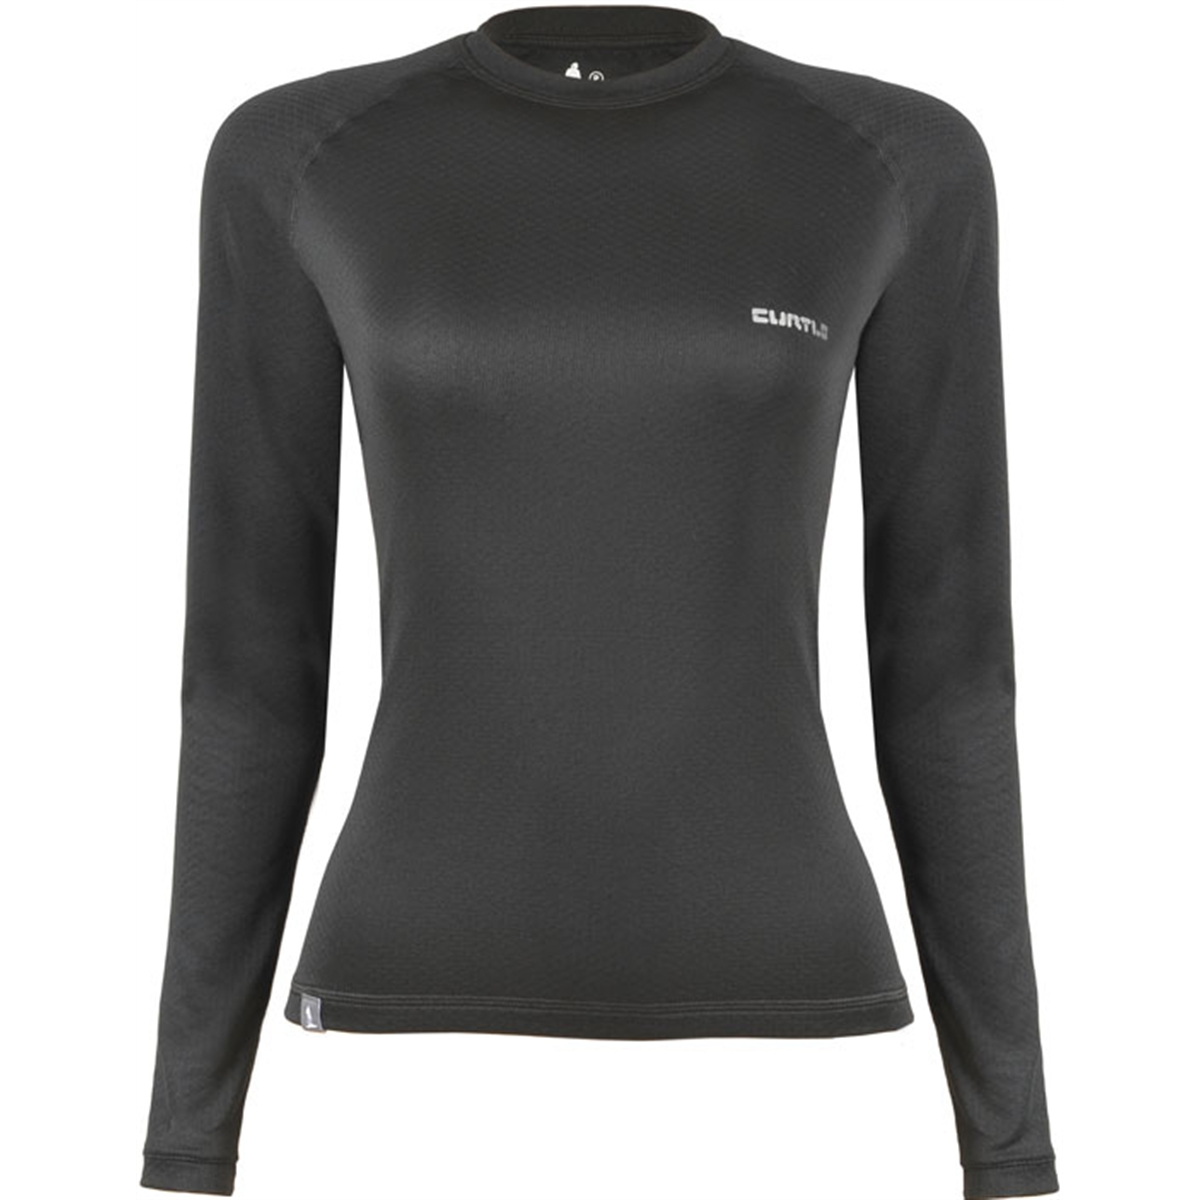 T - shirt ML Underwer Feminina ThermoSkin Curtlo - PRETA - G PRETA G